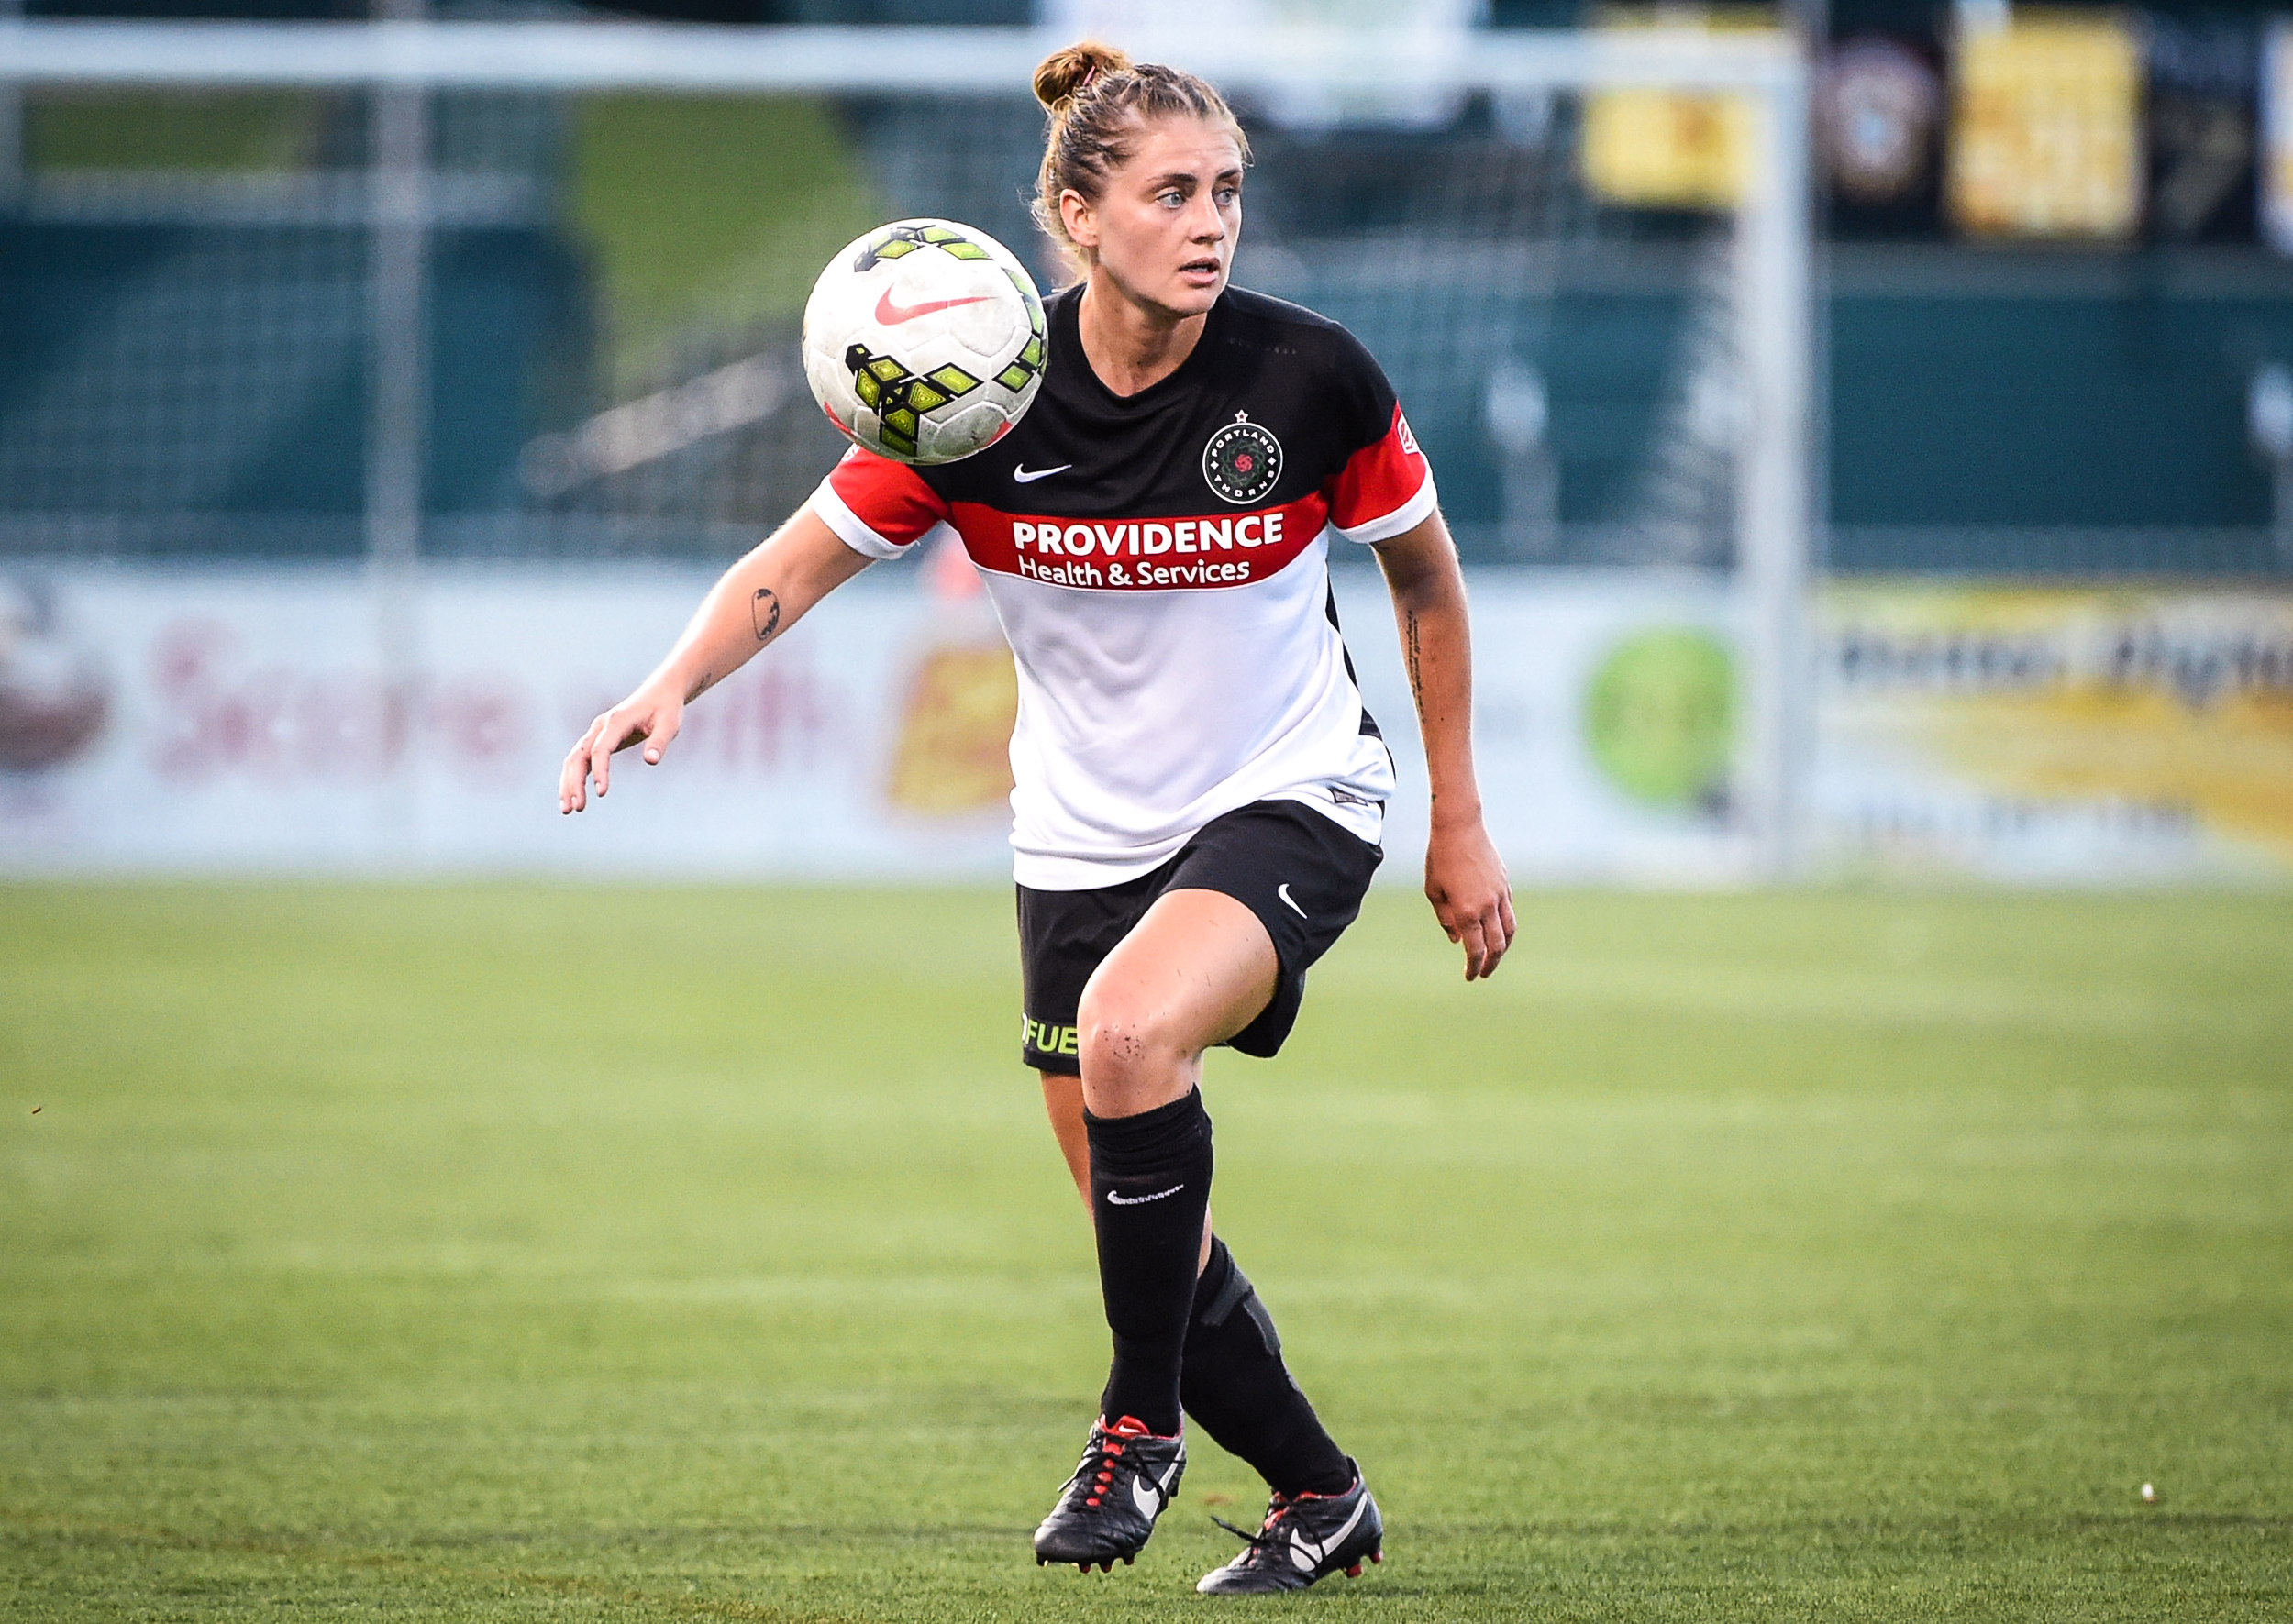 Demands for change in National Women's Soccer League have 'given my pain purpose,' player says